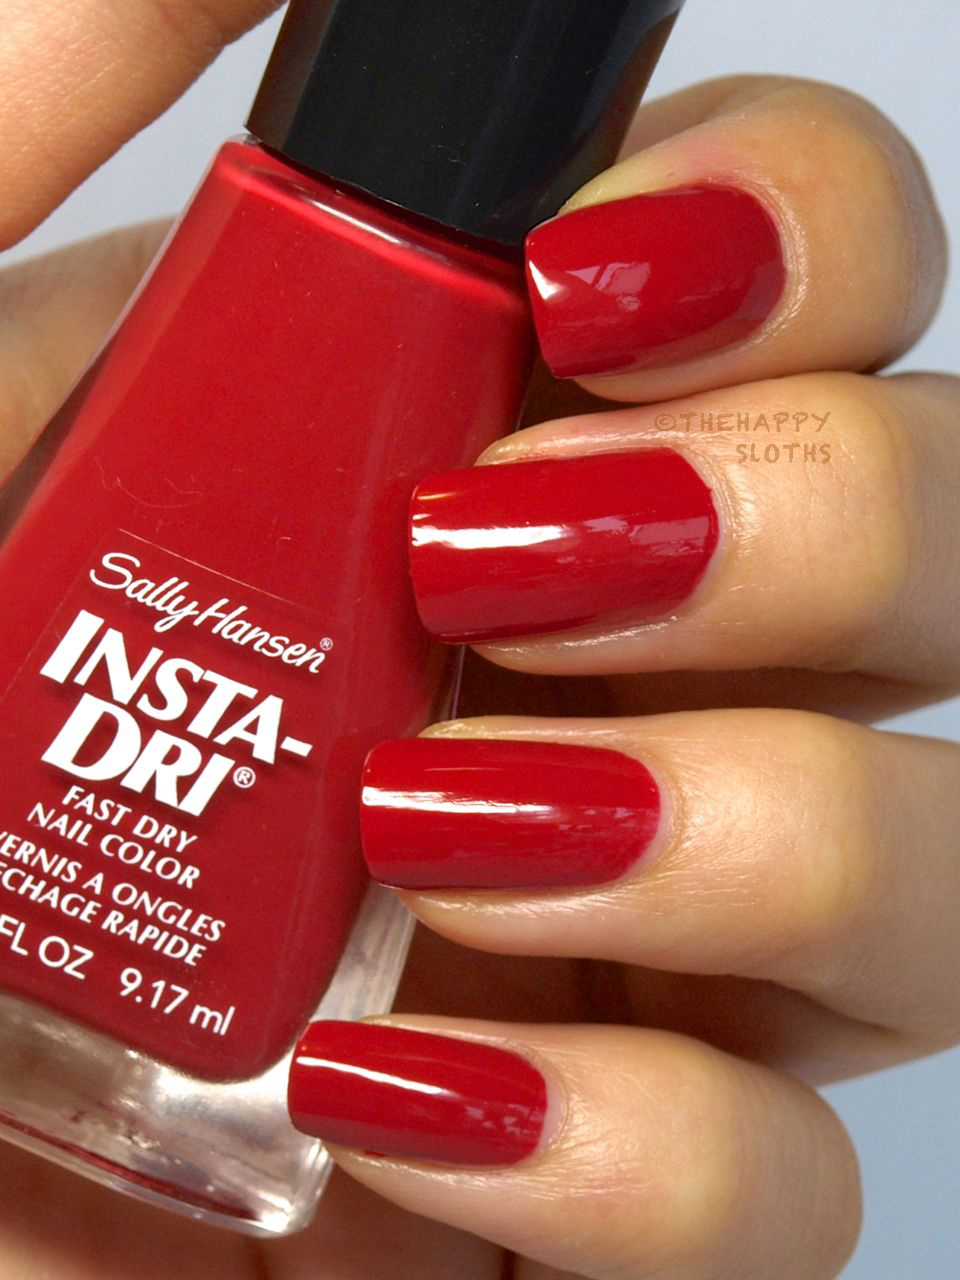 Sally Hansen Insta-Dri Moroccan Spice Market Collection Nail Polish in Surspice: Review and Swatches